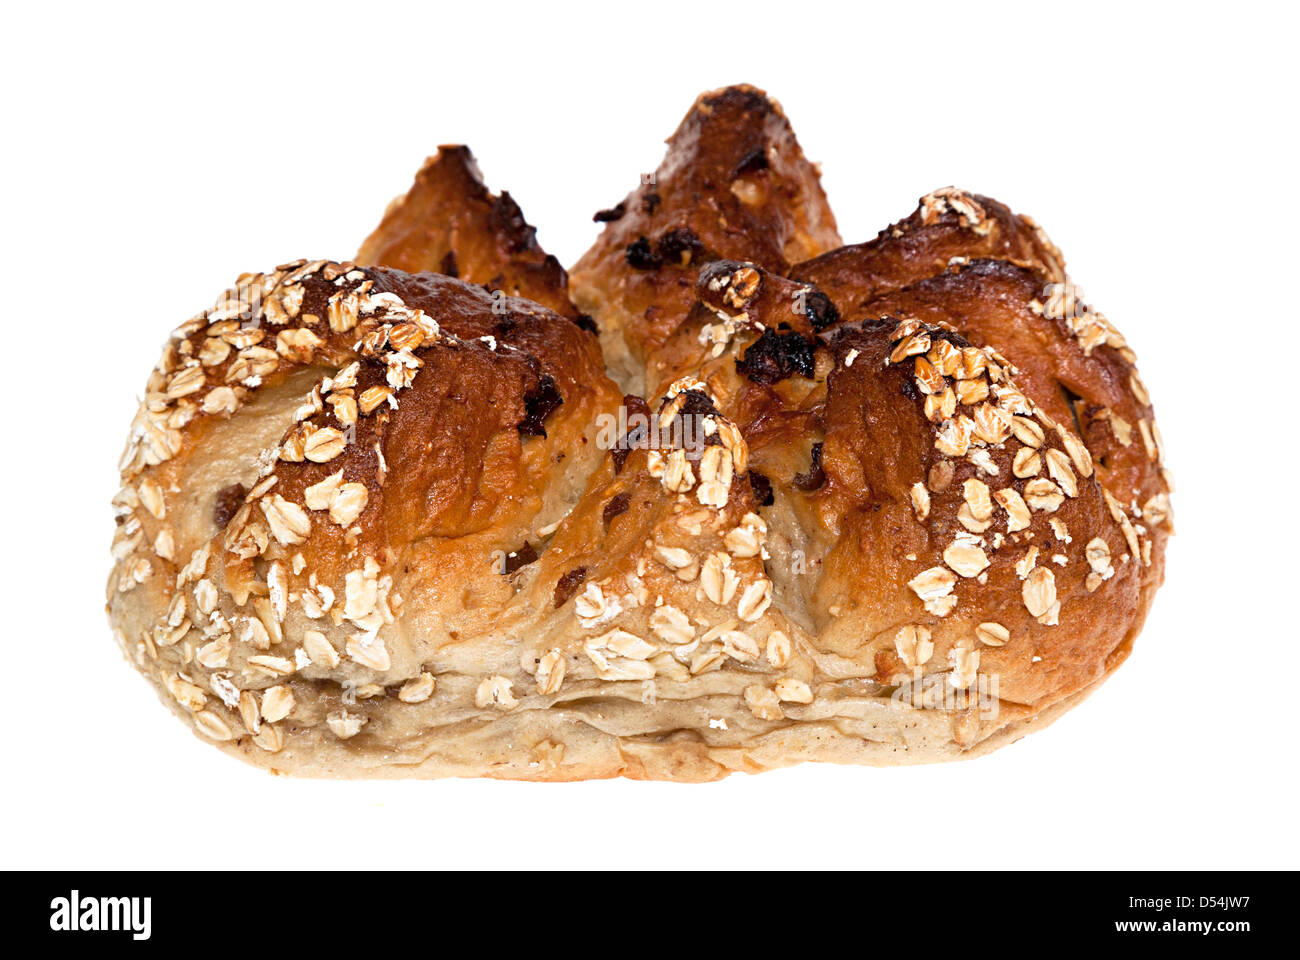 Artisan bread made with banana and oat grain on white background - Stock Image